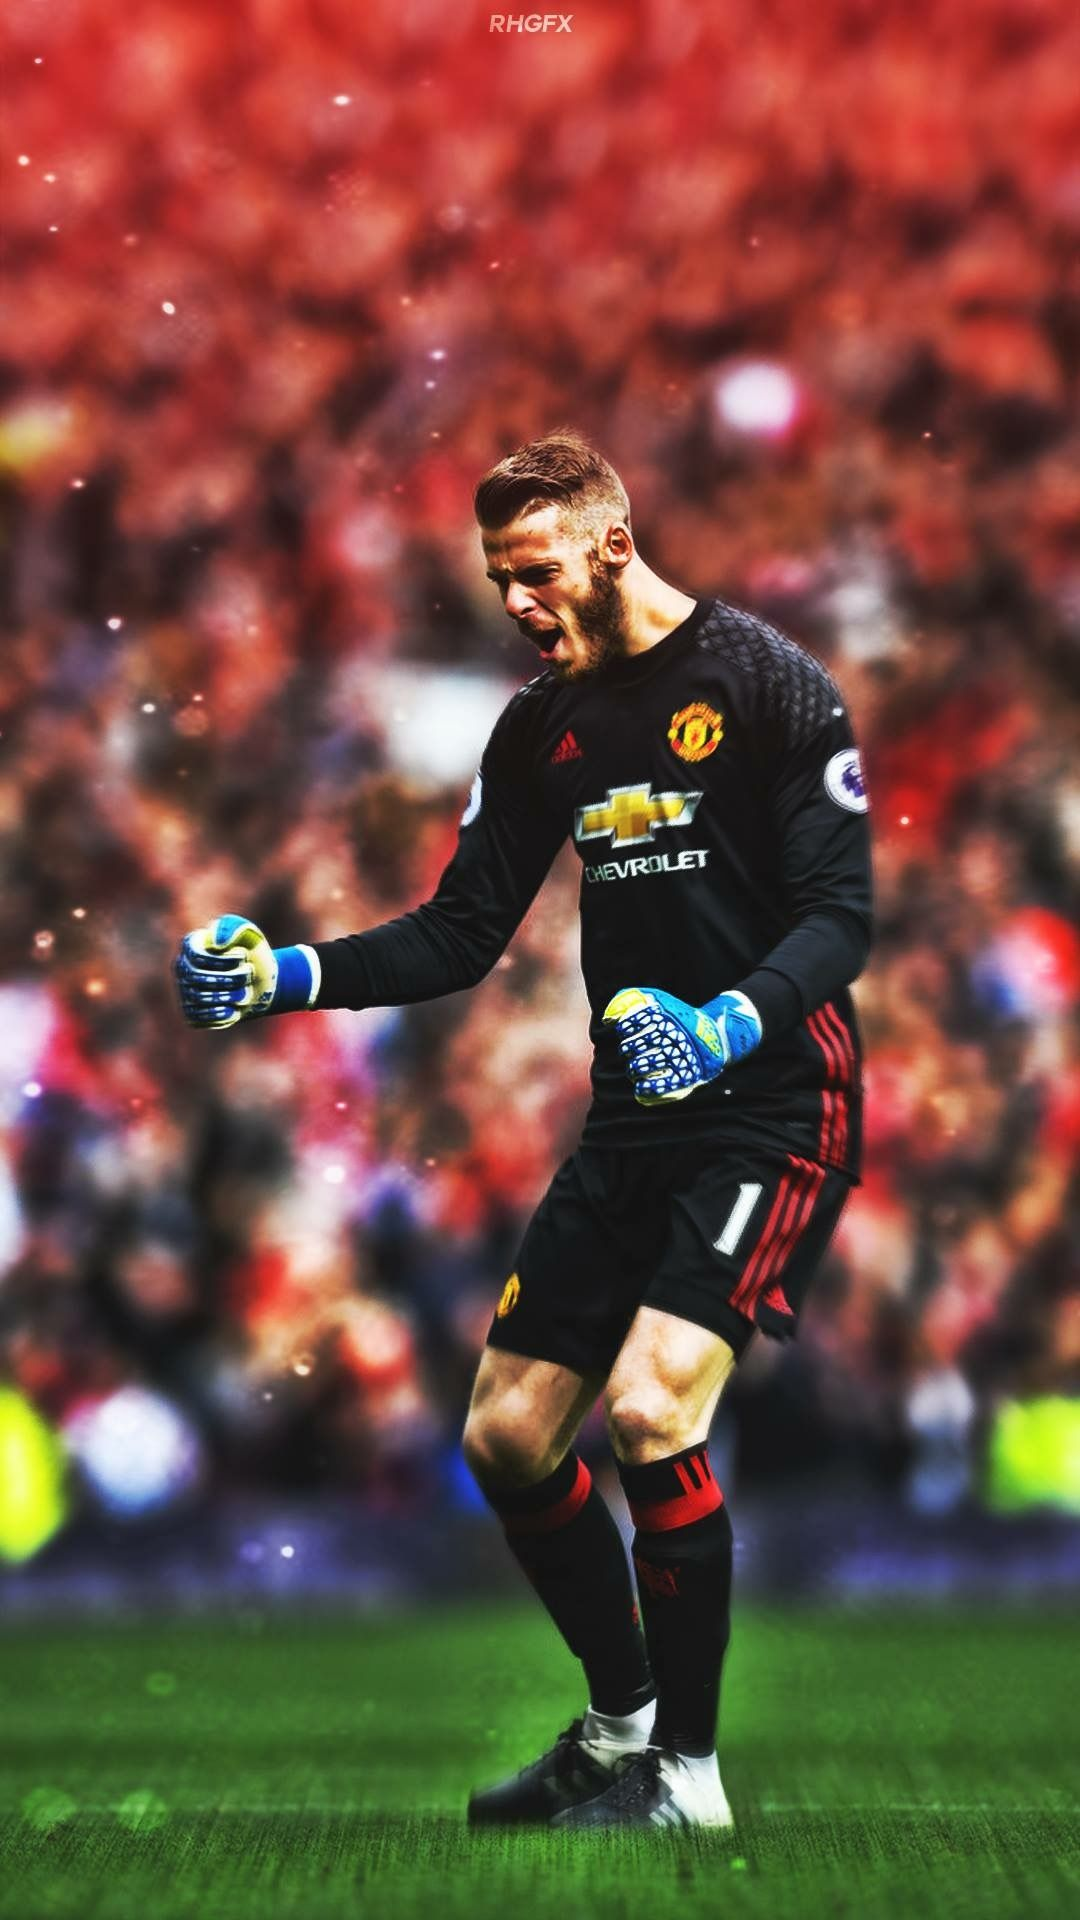 Get Latest Manchester United Wallpapers De Gea No one in this world is better than David DeGea